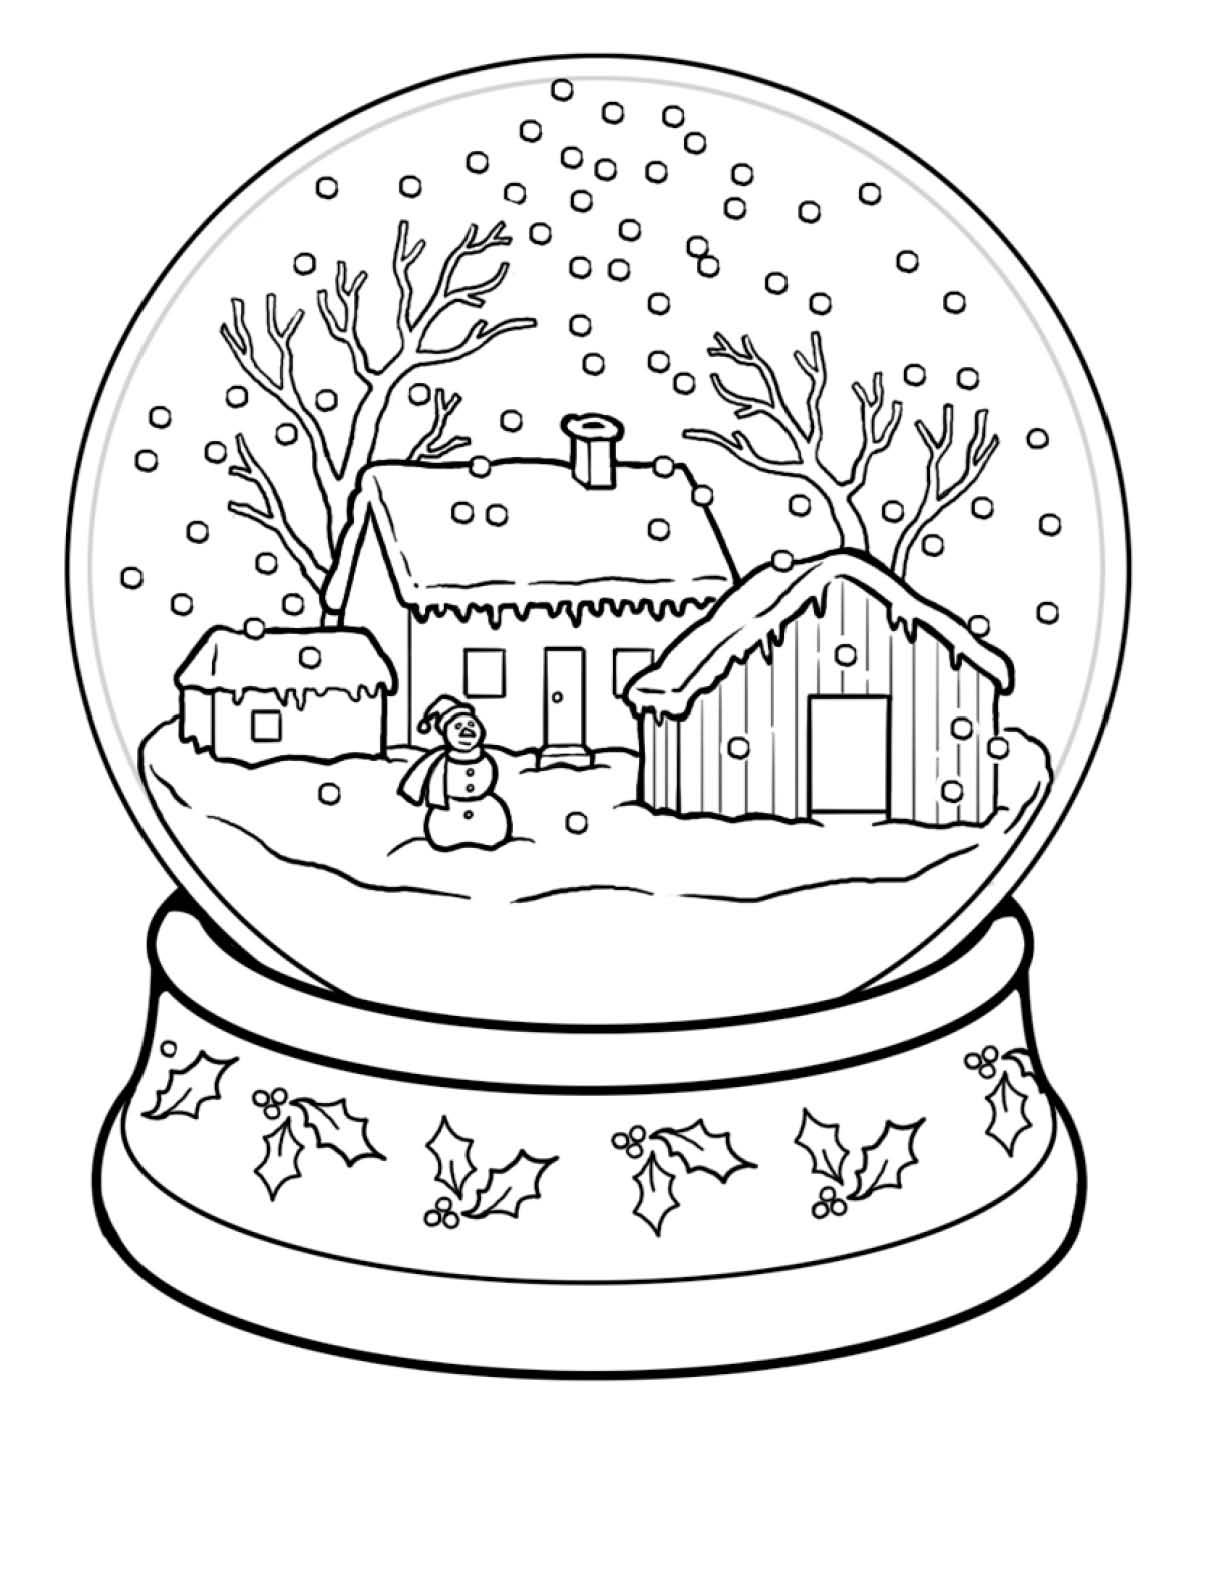 Winter Coloring Pages Snow Globe Coloringstar Trees For Heroes